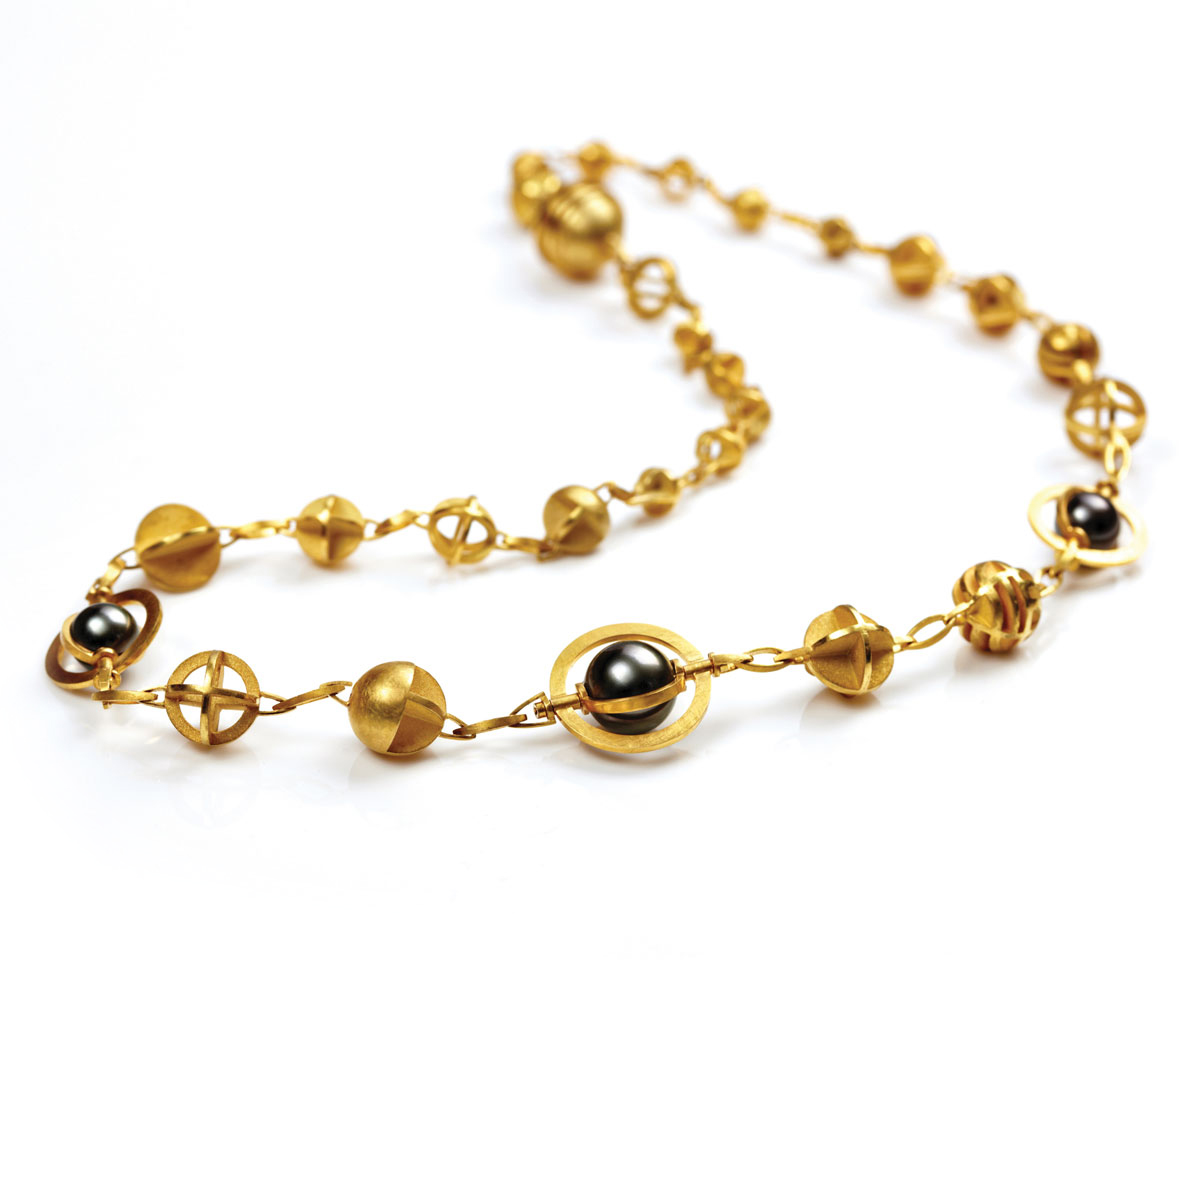 18ct gold necklace with rotating Tahitian pearls